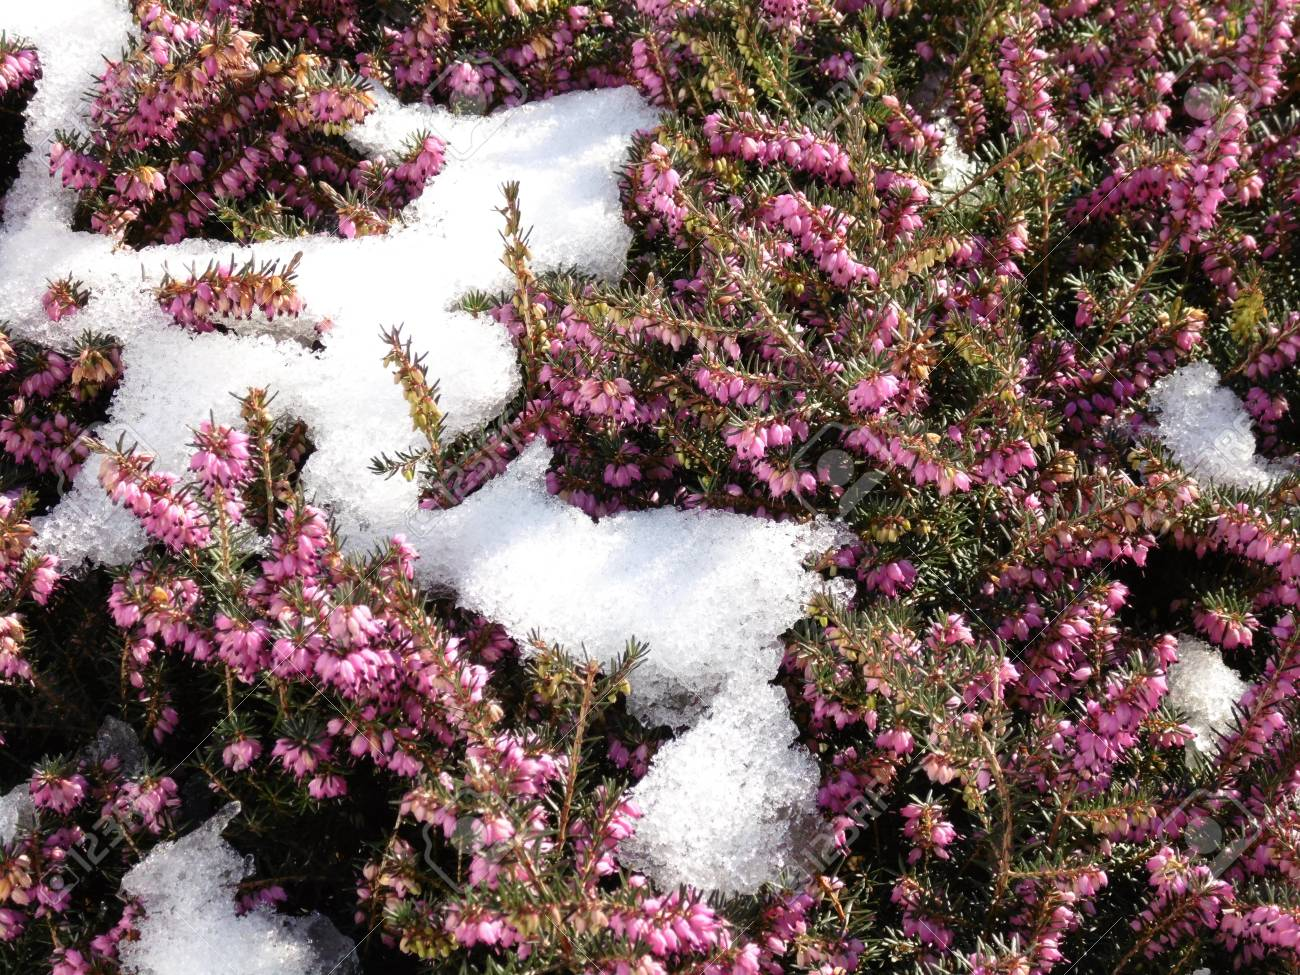 Spring Is Coming A Remnant Of Snow On A Flowering Heather Plant